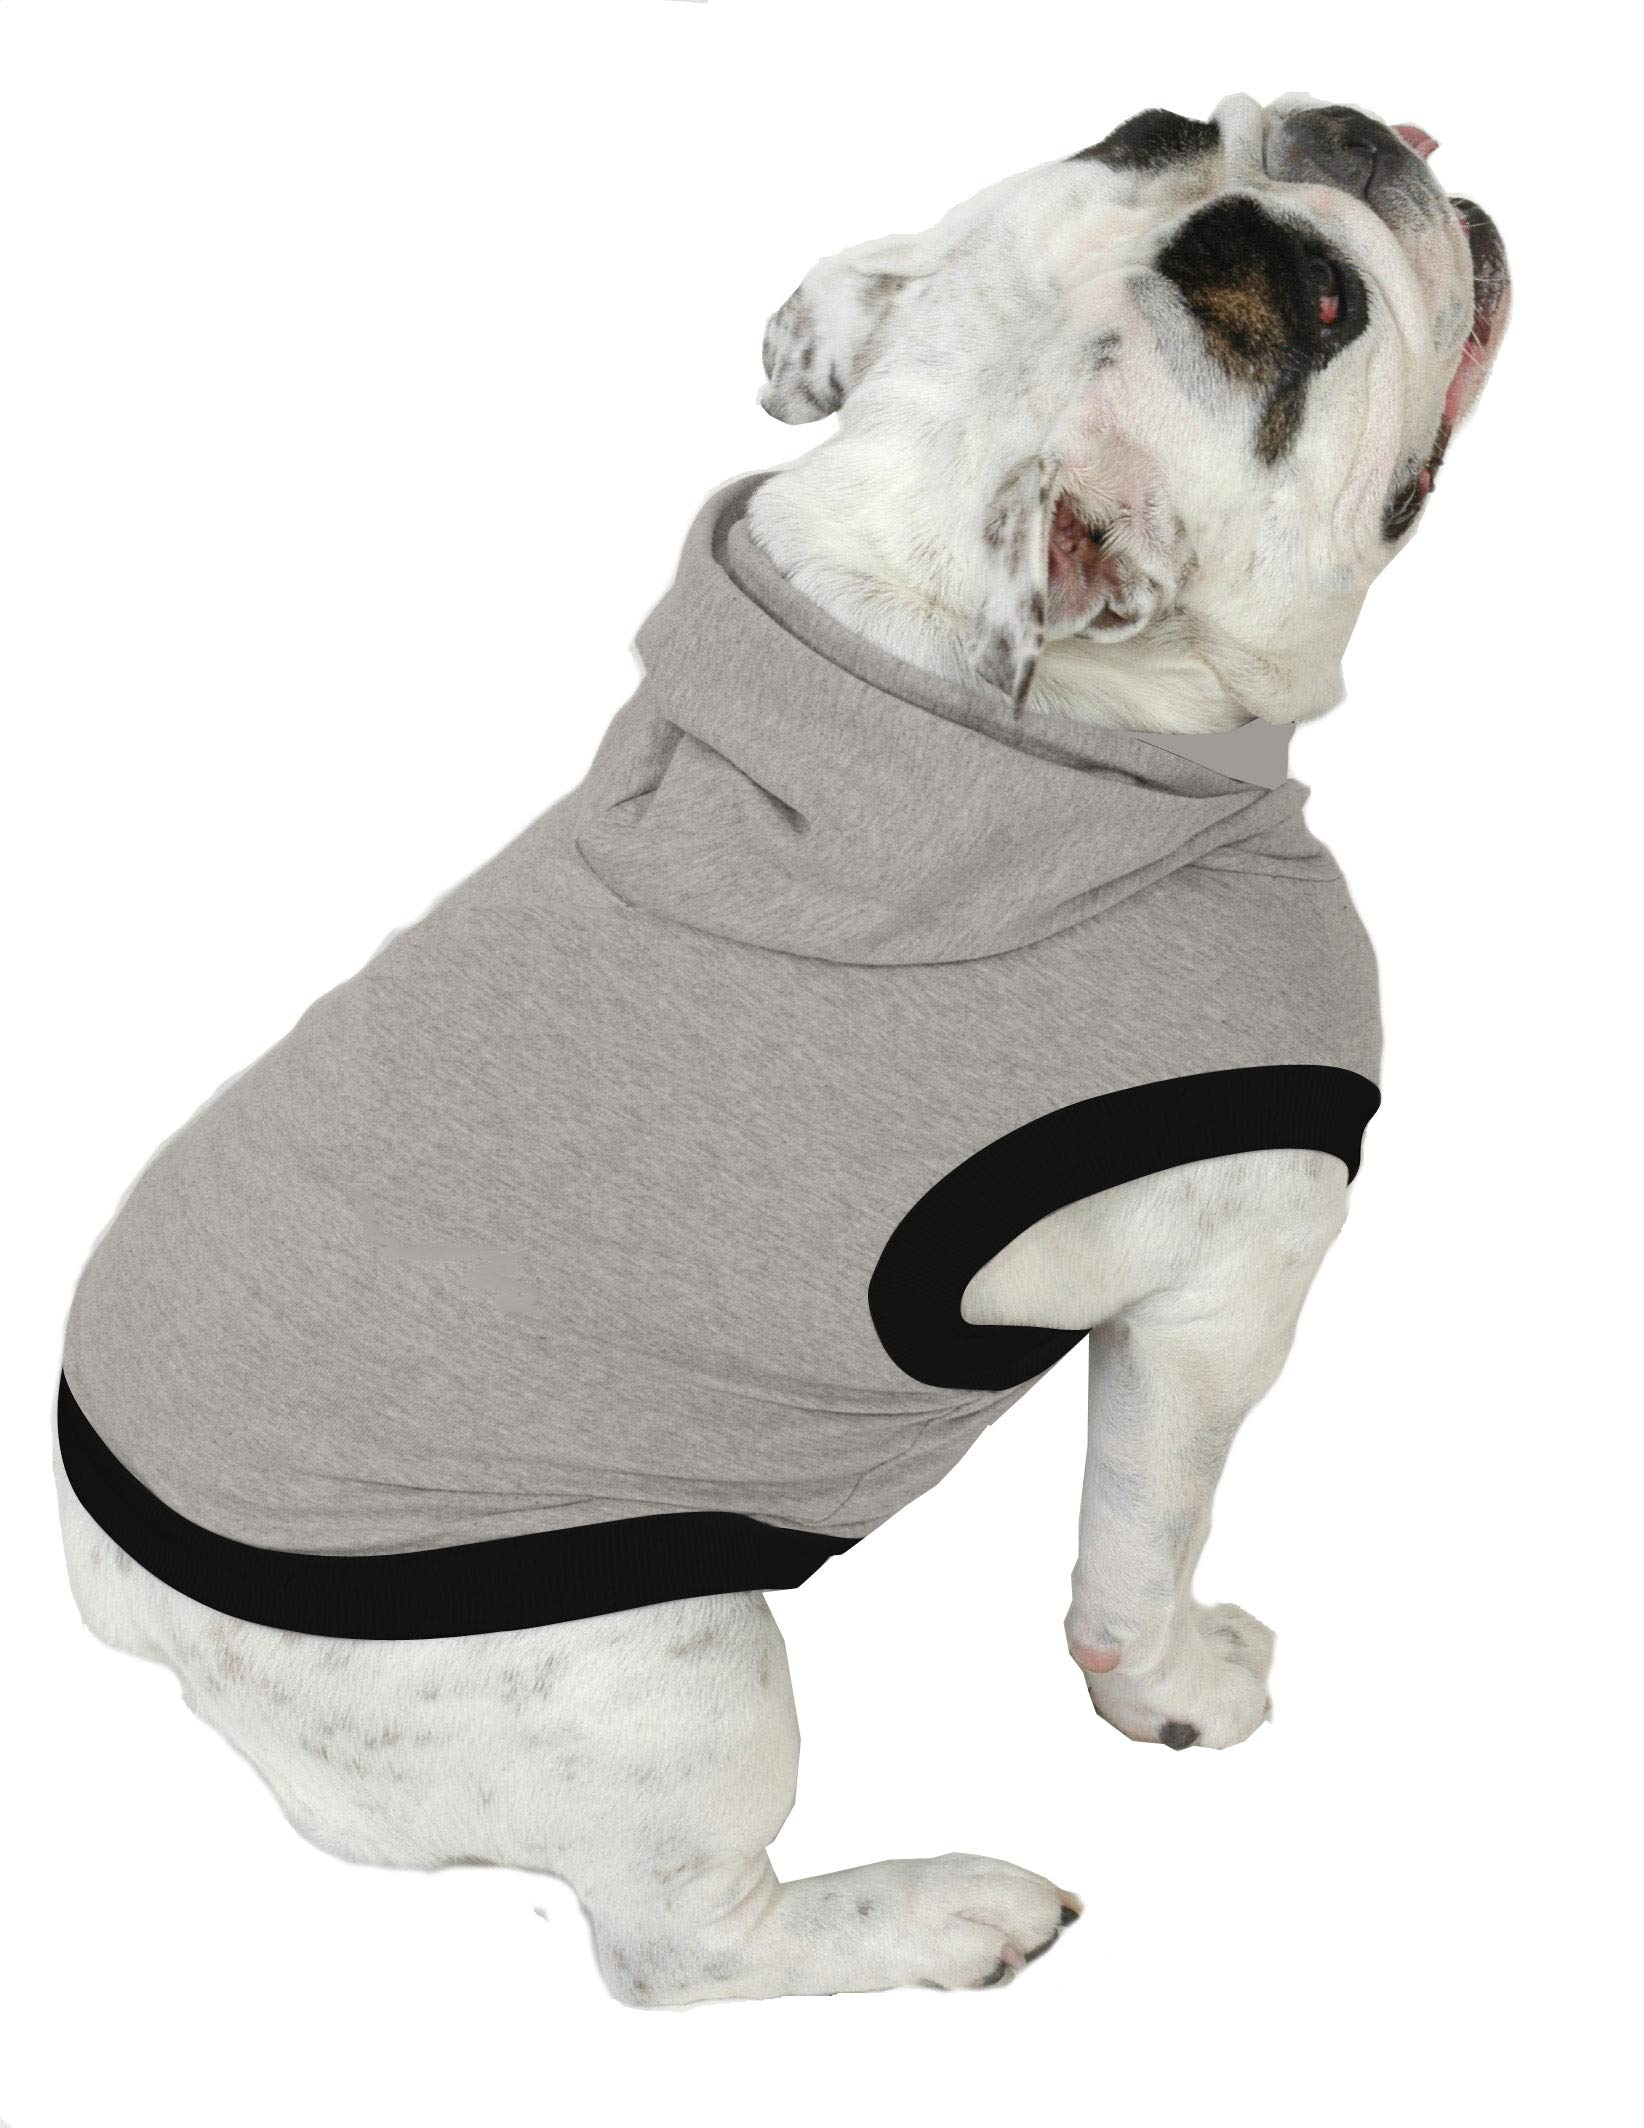 Plus Size Pups English Bulldog Dog Hoodie Tshirt - Beefy Over 8 Colors & Patterns to Choose from (Beefy, Heather Grey) by Plus Size Pups